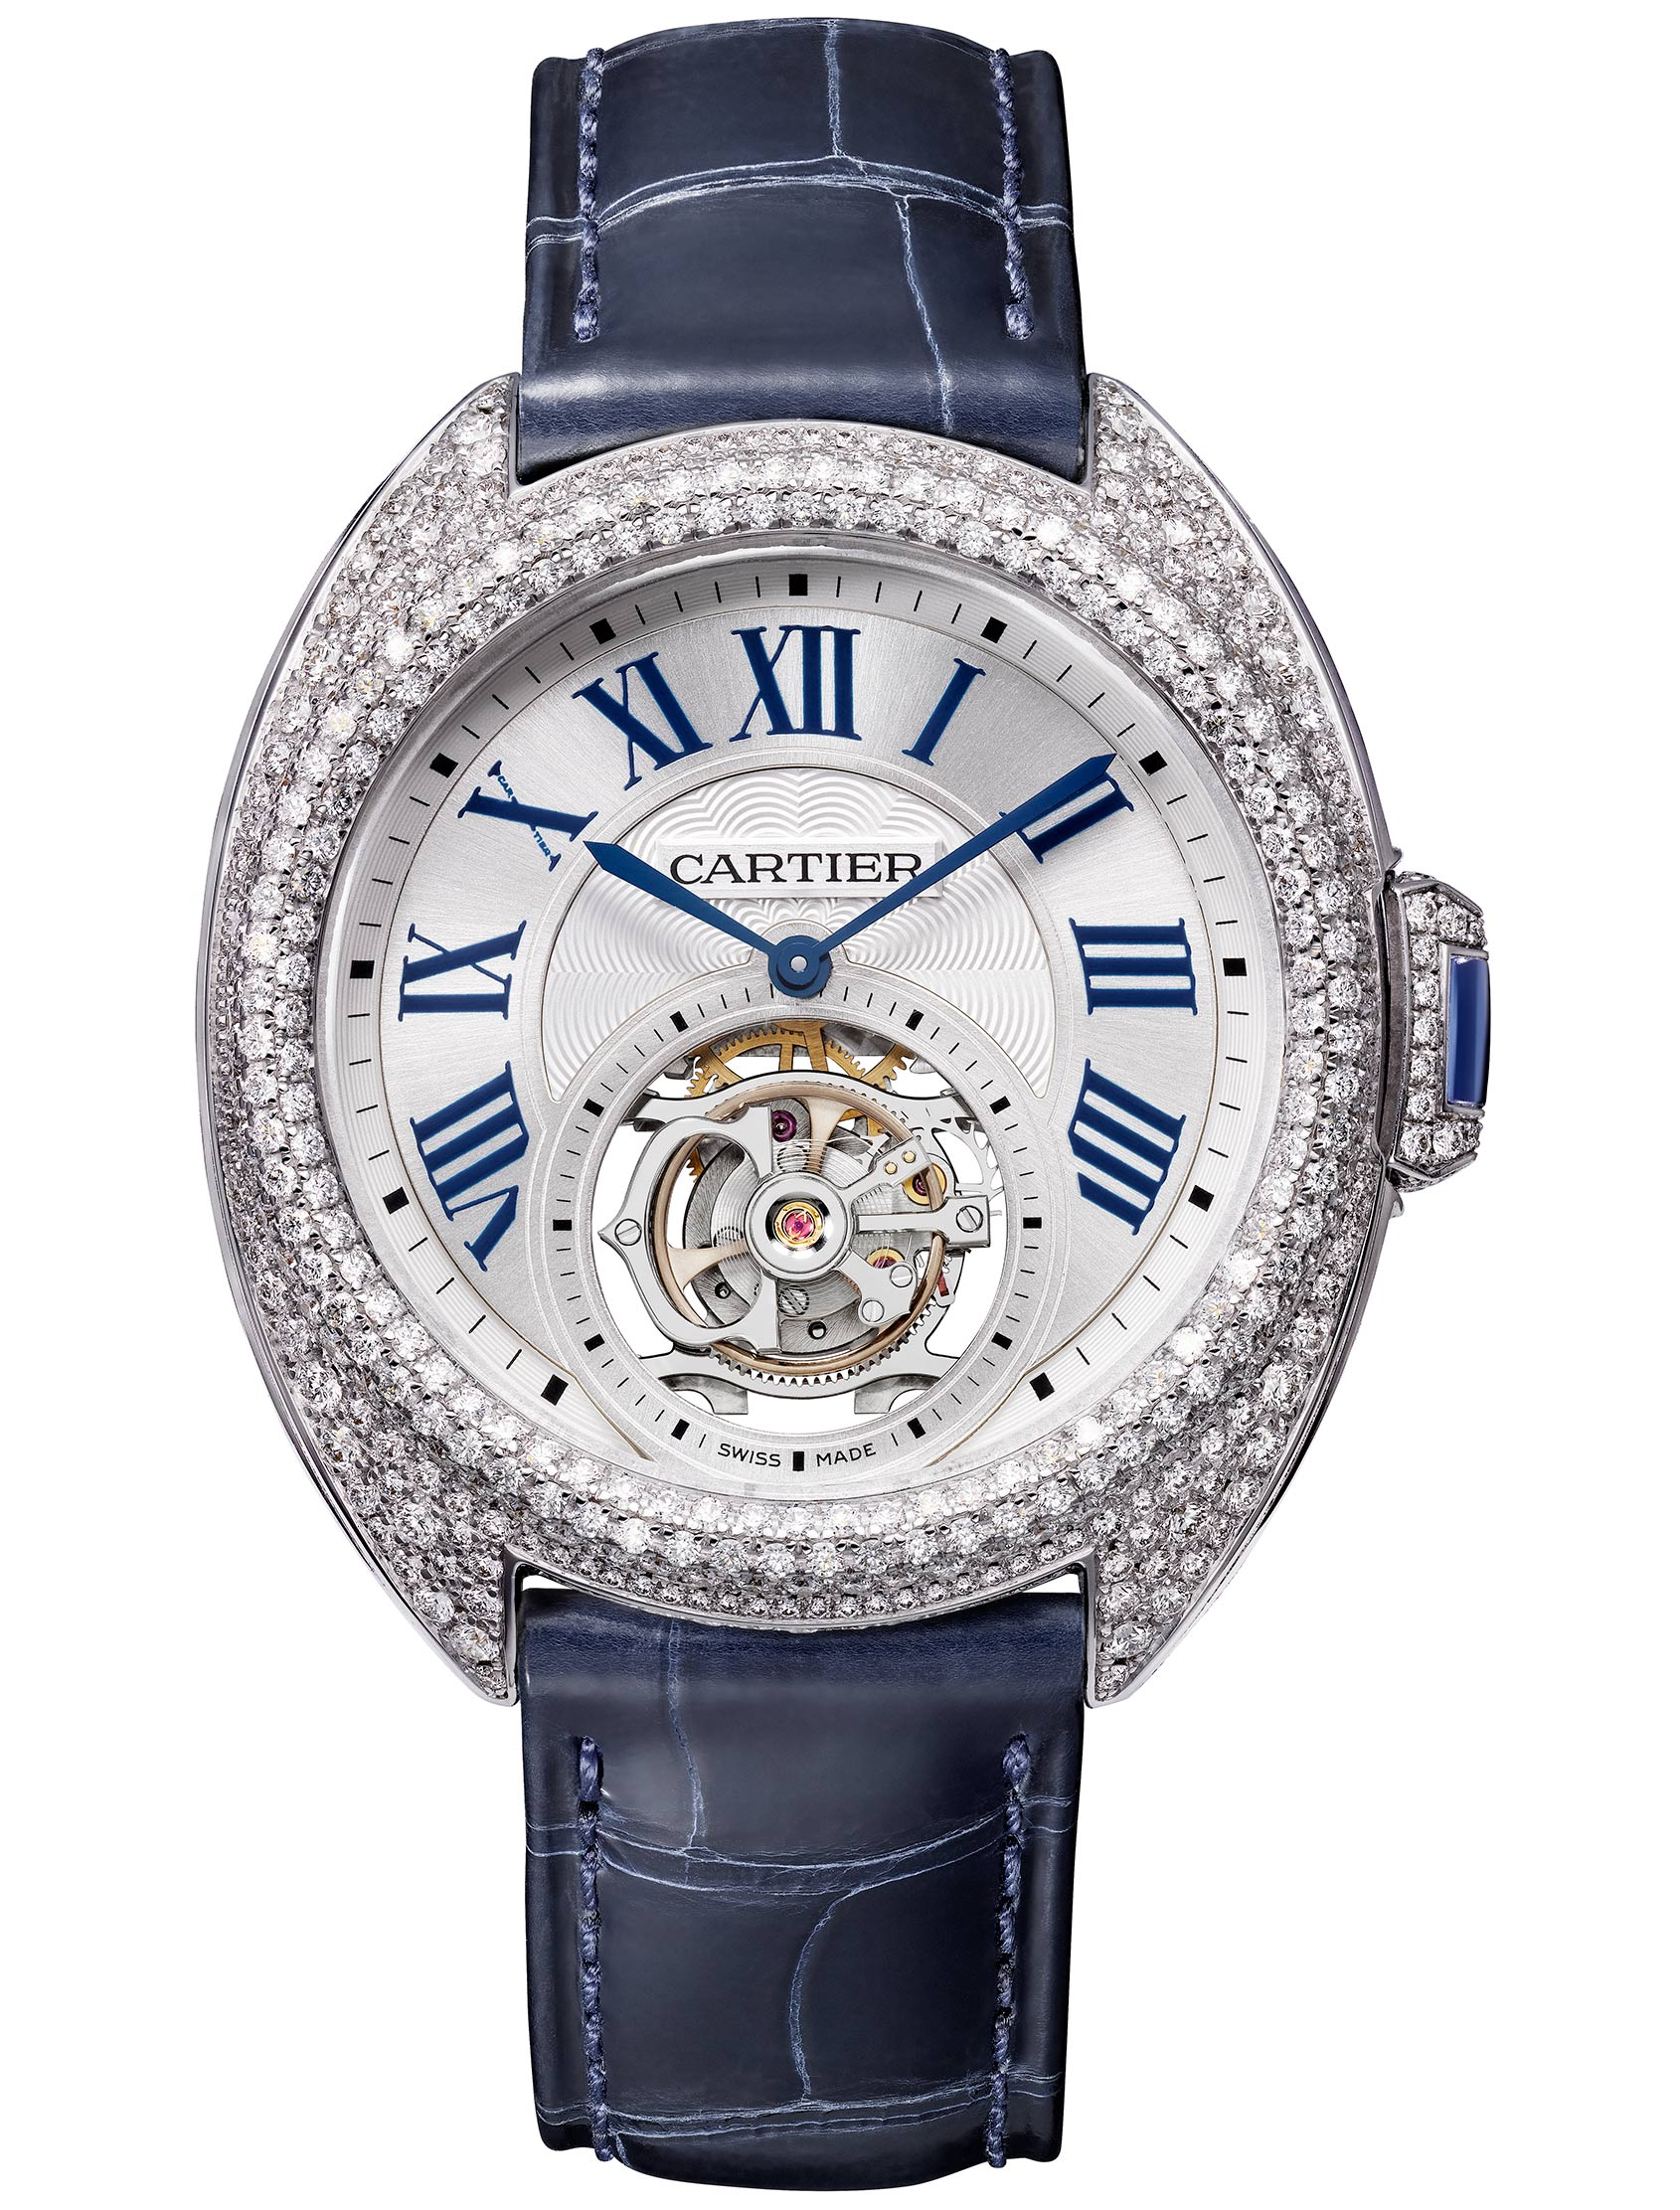 tank flying cartier in watches white gold ricaine americaine tourbillon am